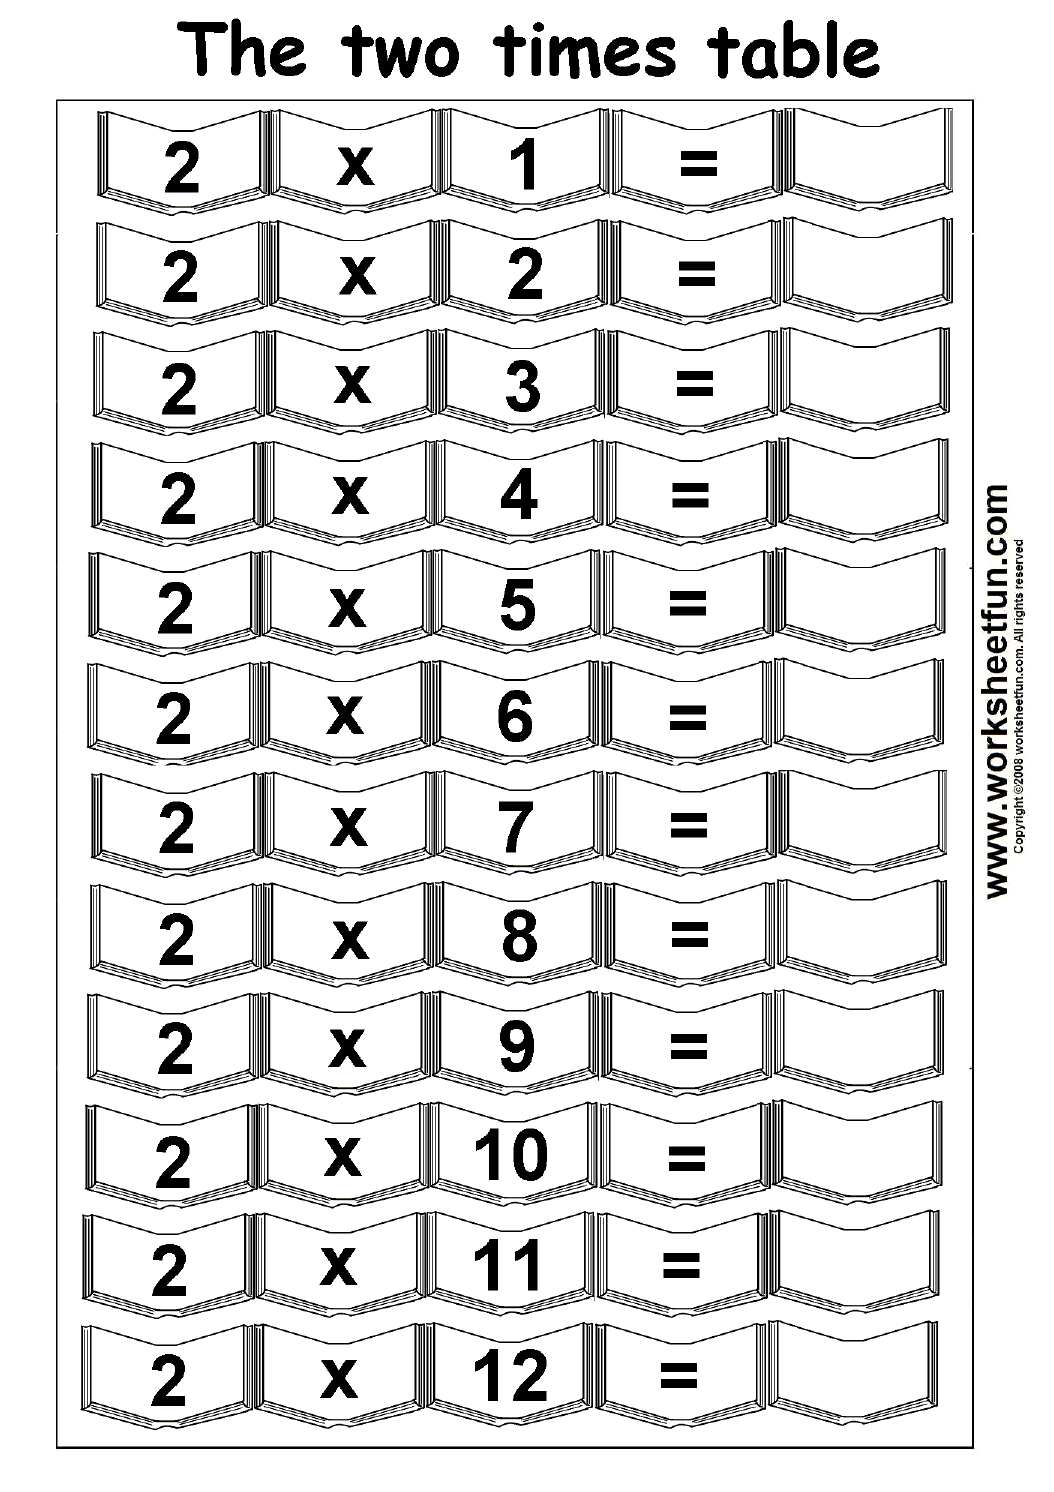 Printables Times Tables Worksheets times table 3 free printable worksheets worksheetfun multiplication tables 2 4 5 four